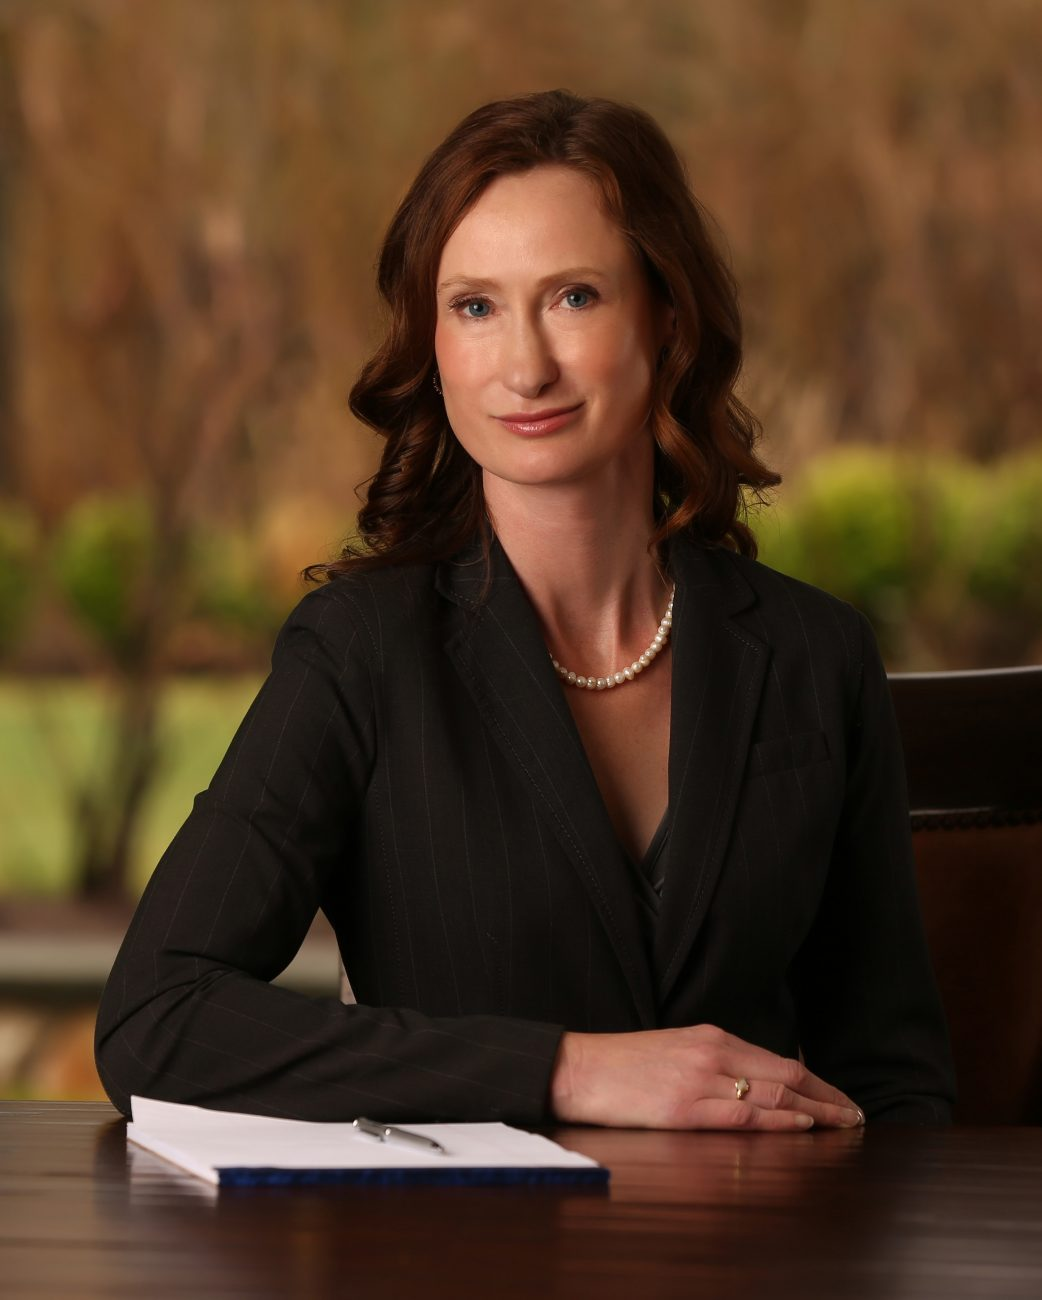 Marcie Vaughan Employment Law Attorney